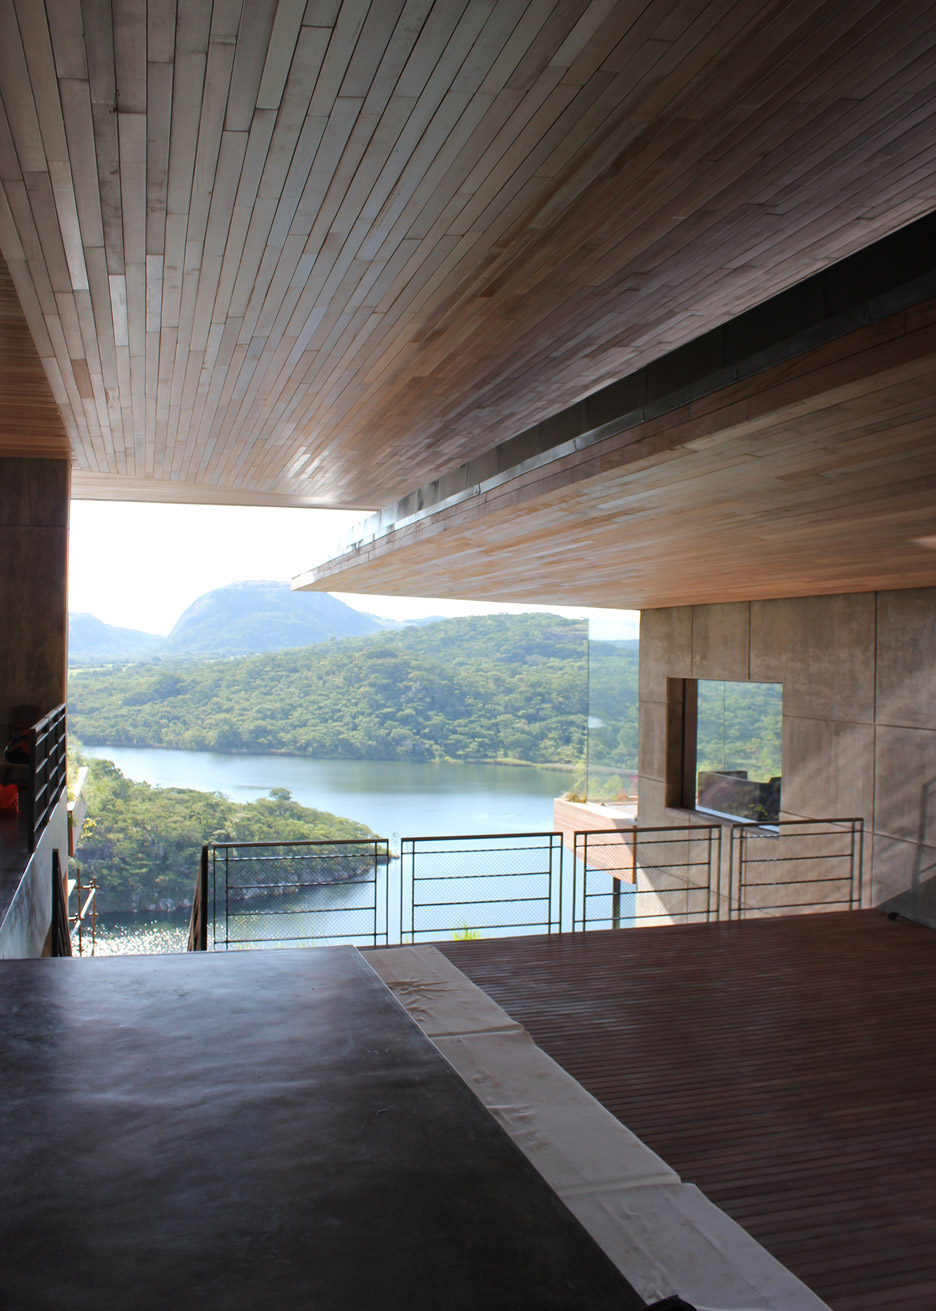 Gota Dam Residence by Sforza Seilern Architects